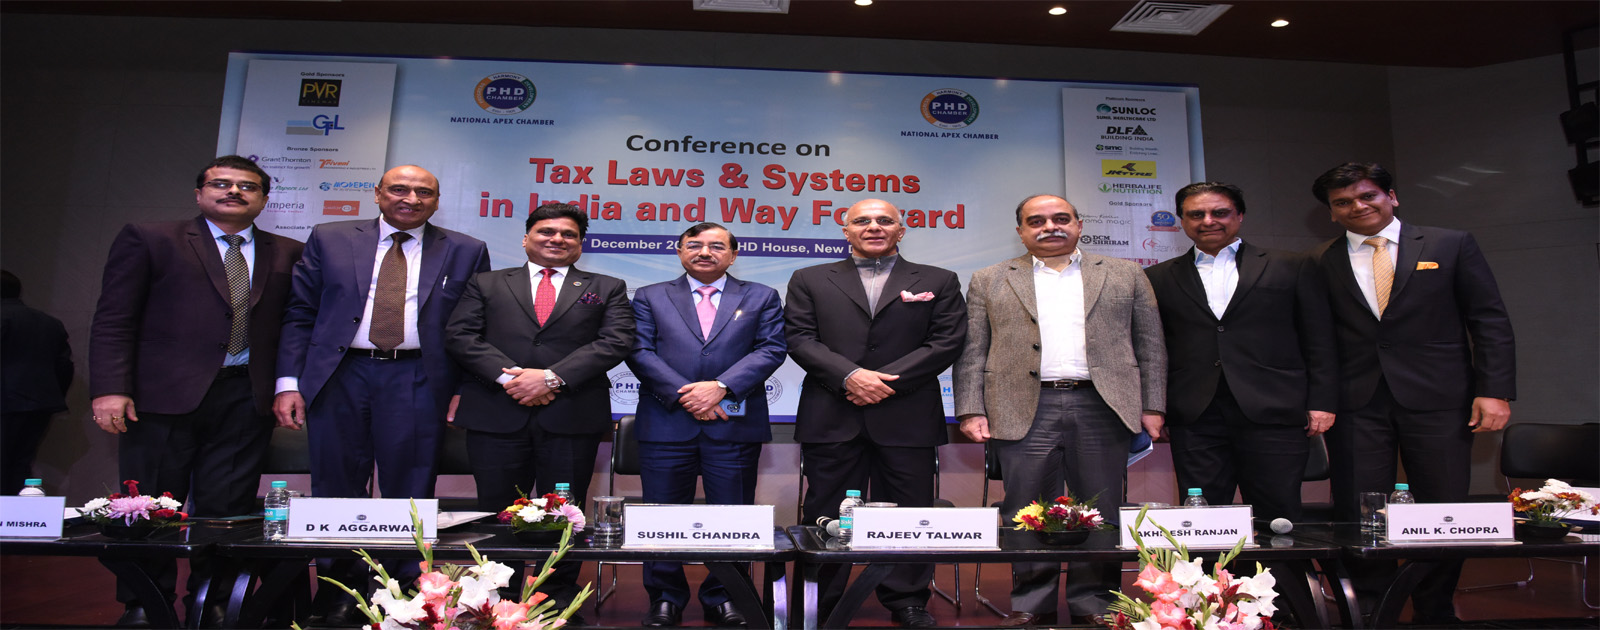 "Conference on ""Tax Laws & Systems in India and Way Forward"""